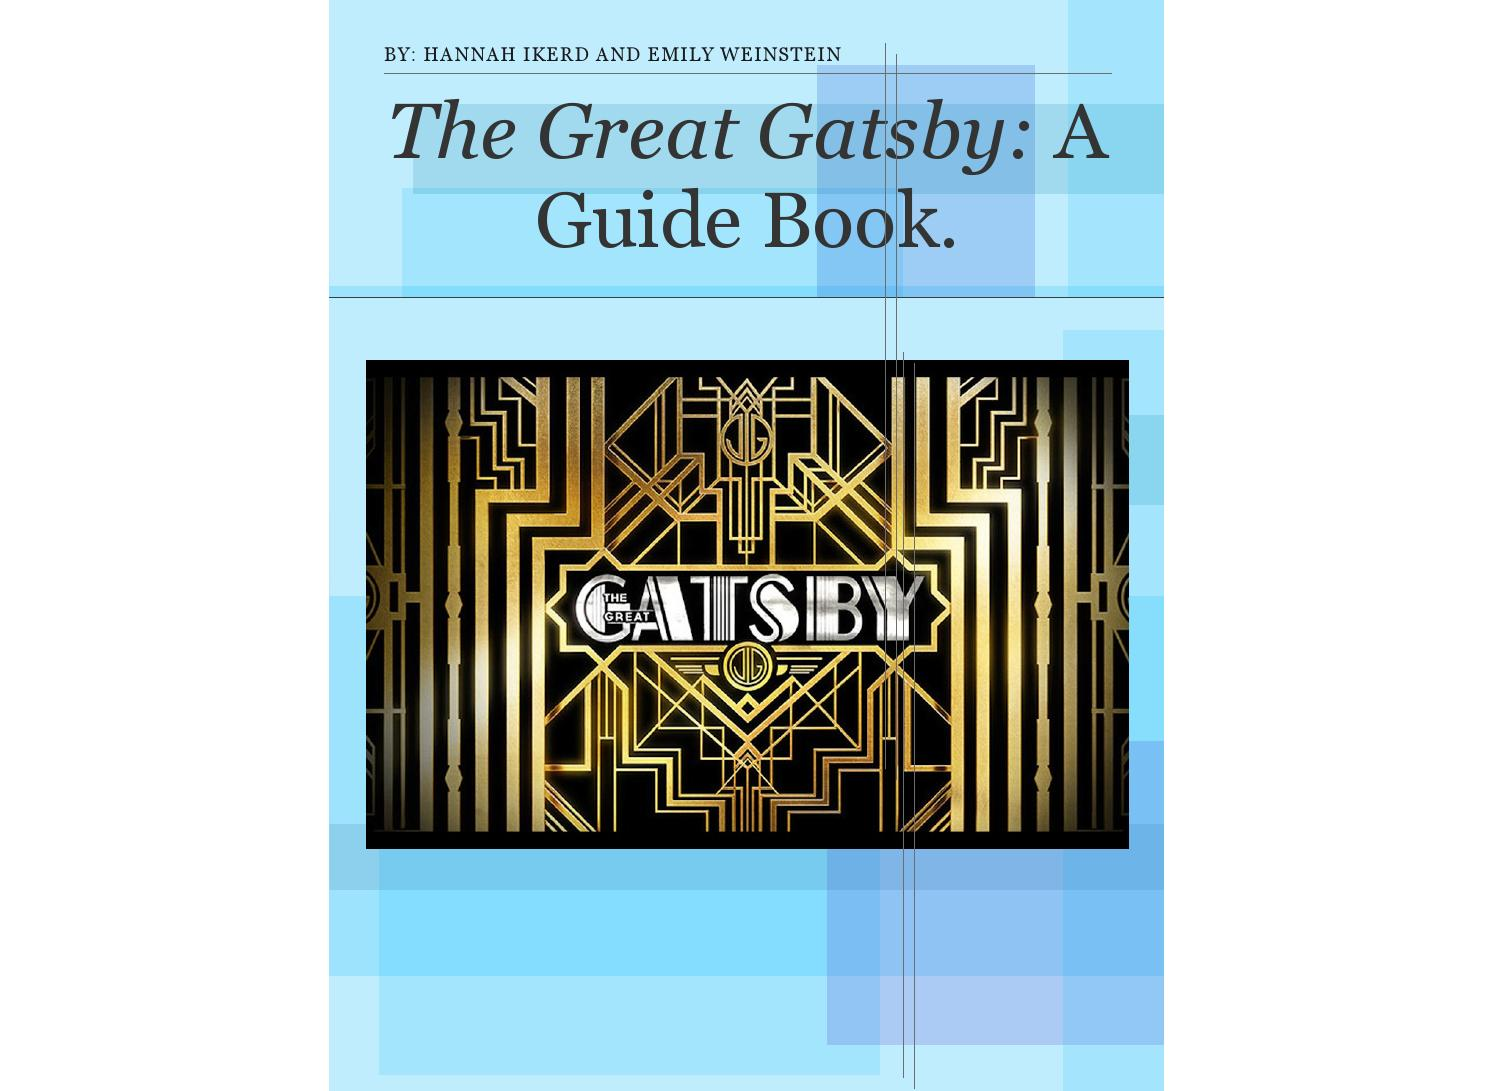 The great gatsby guide book by Hannah - issuu